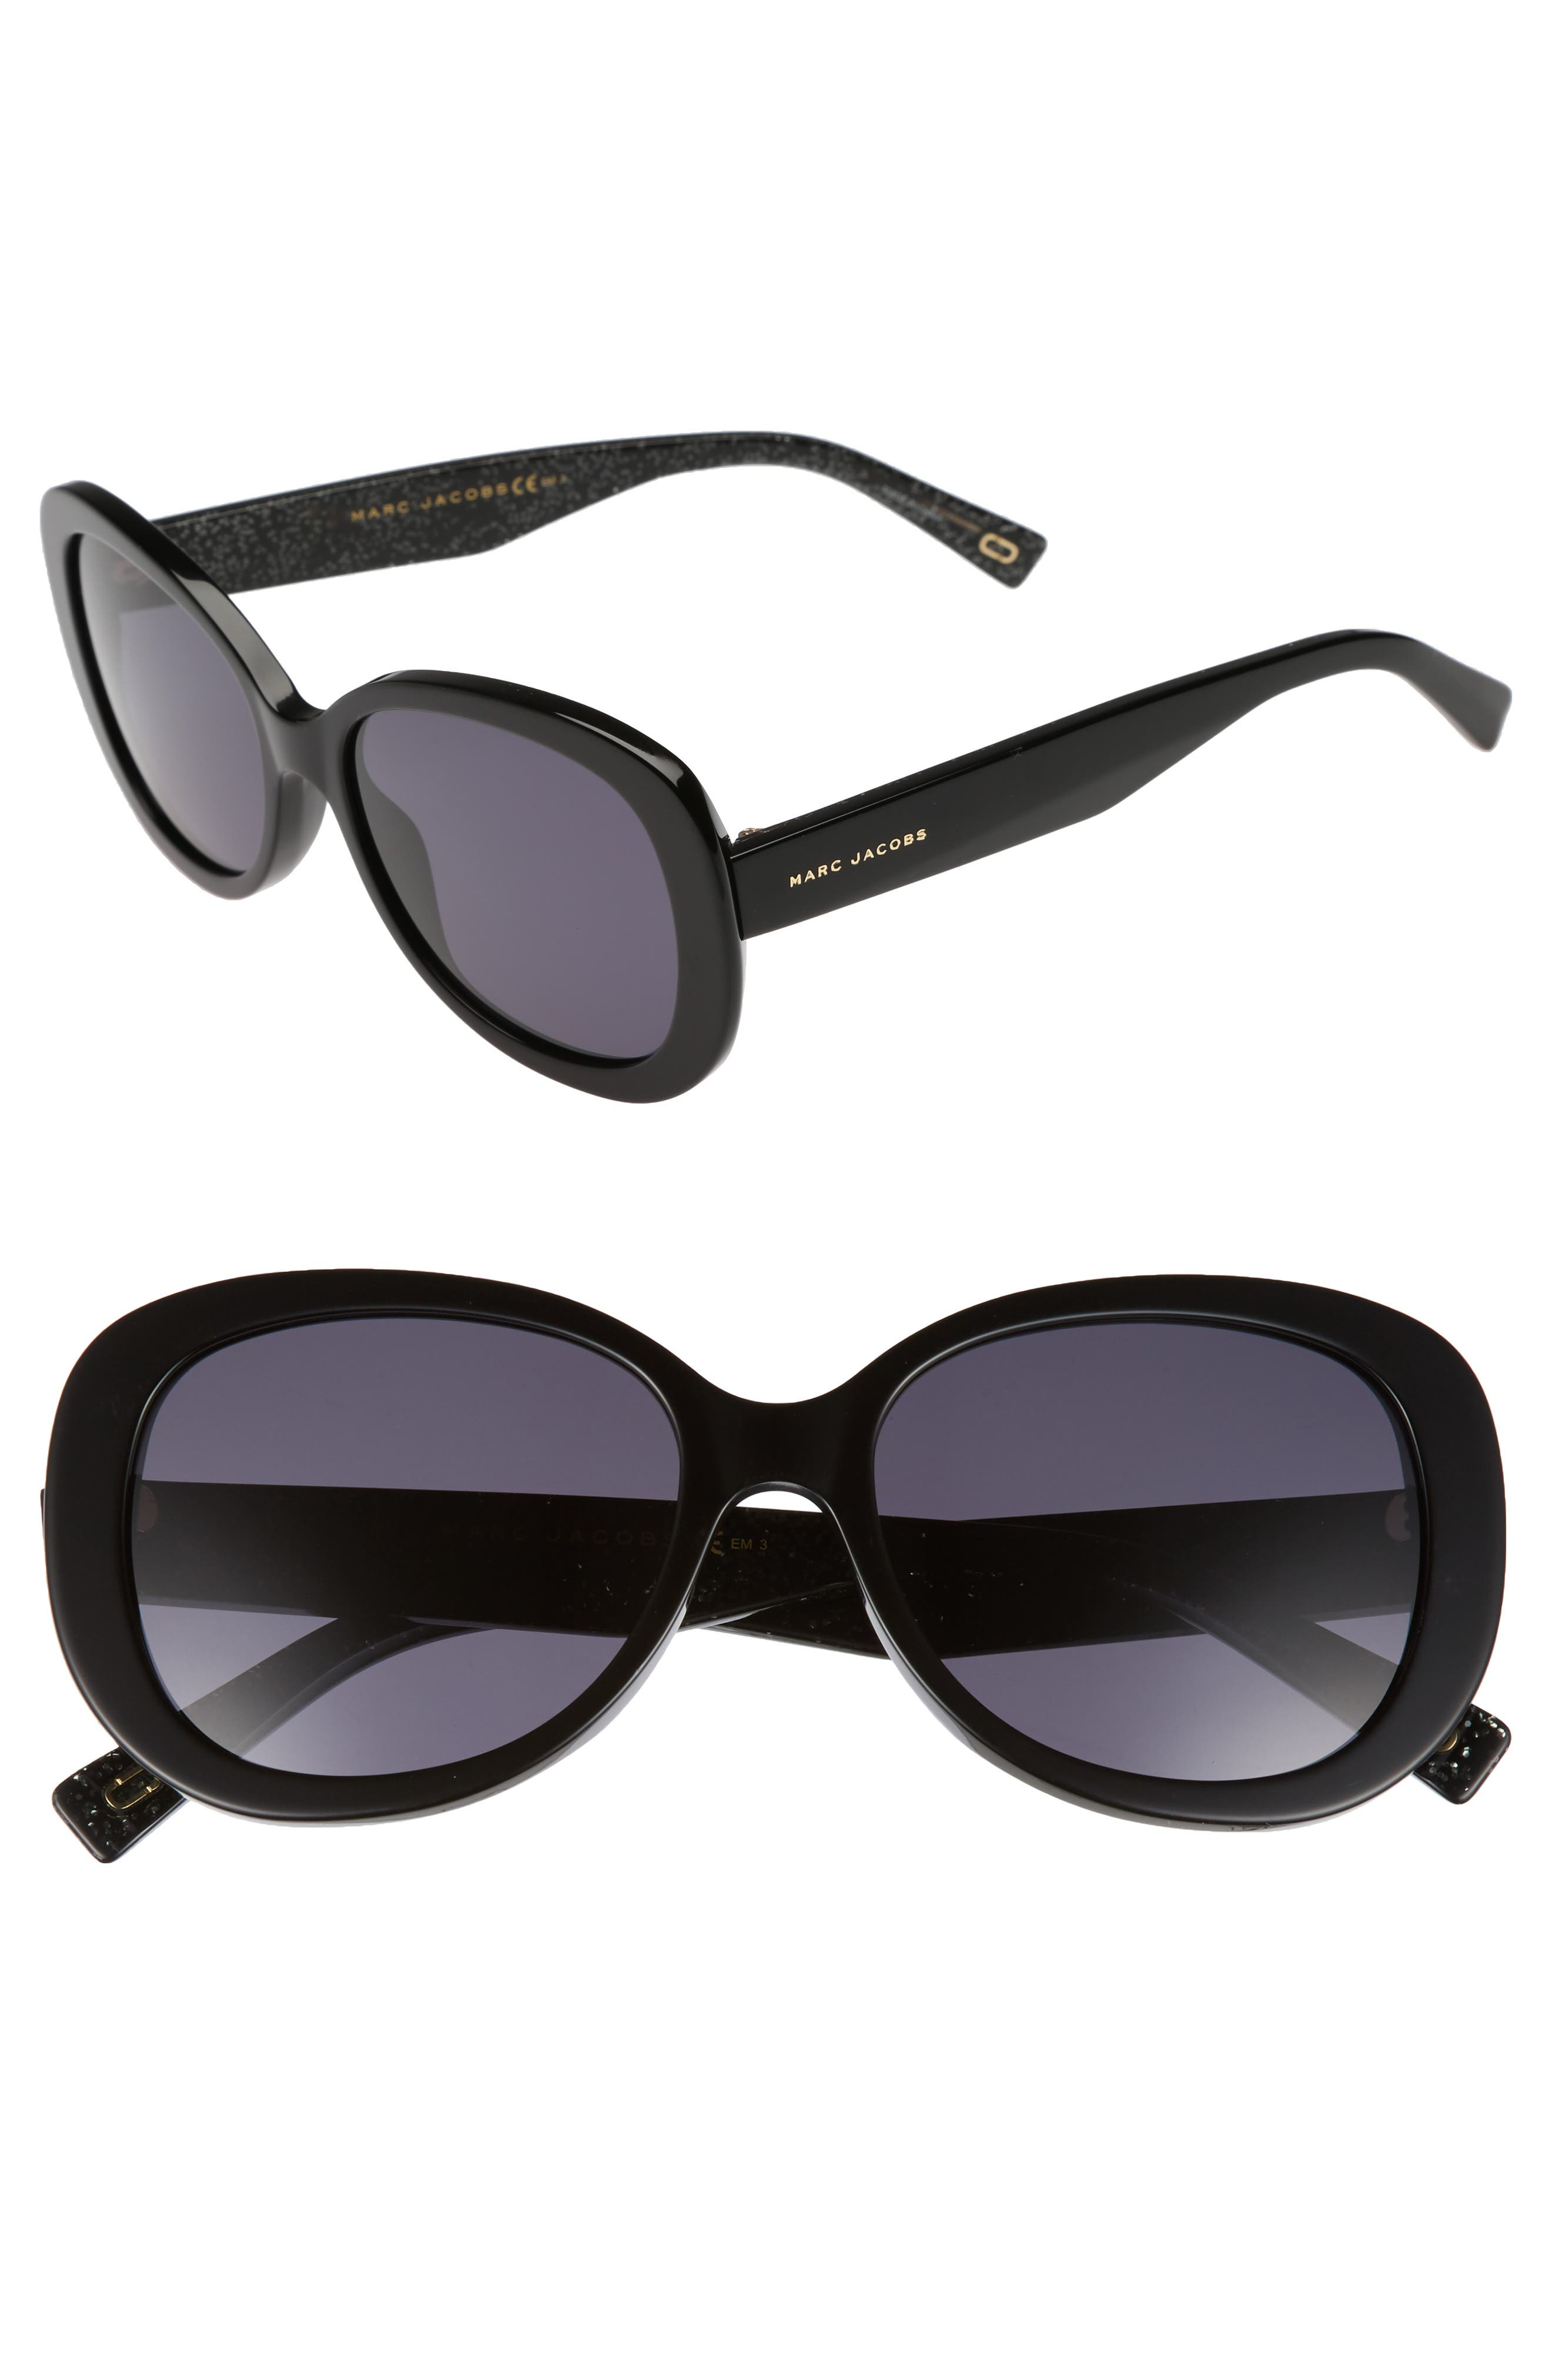 Main Image - MARC JACOBS 56mm Butterfly Sunglasses